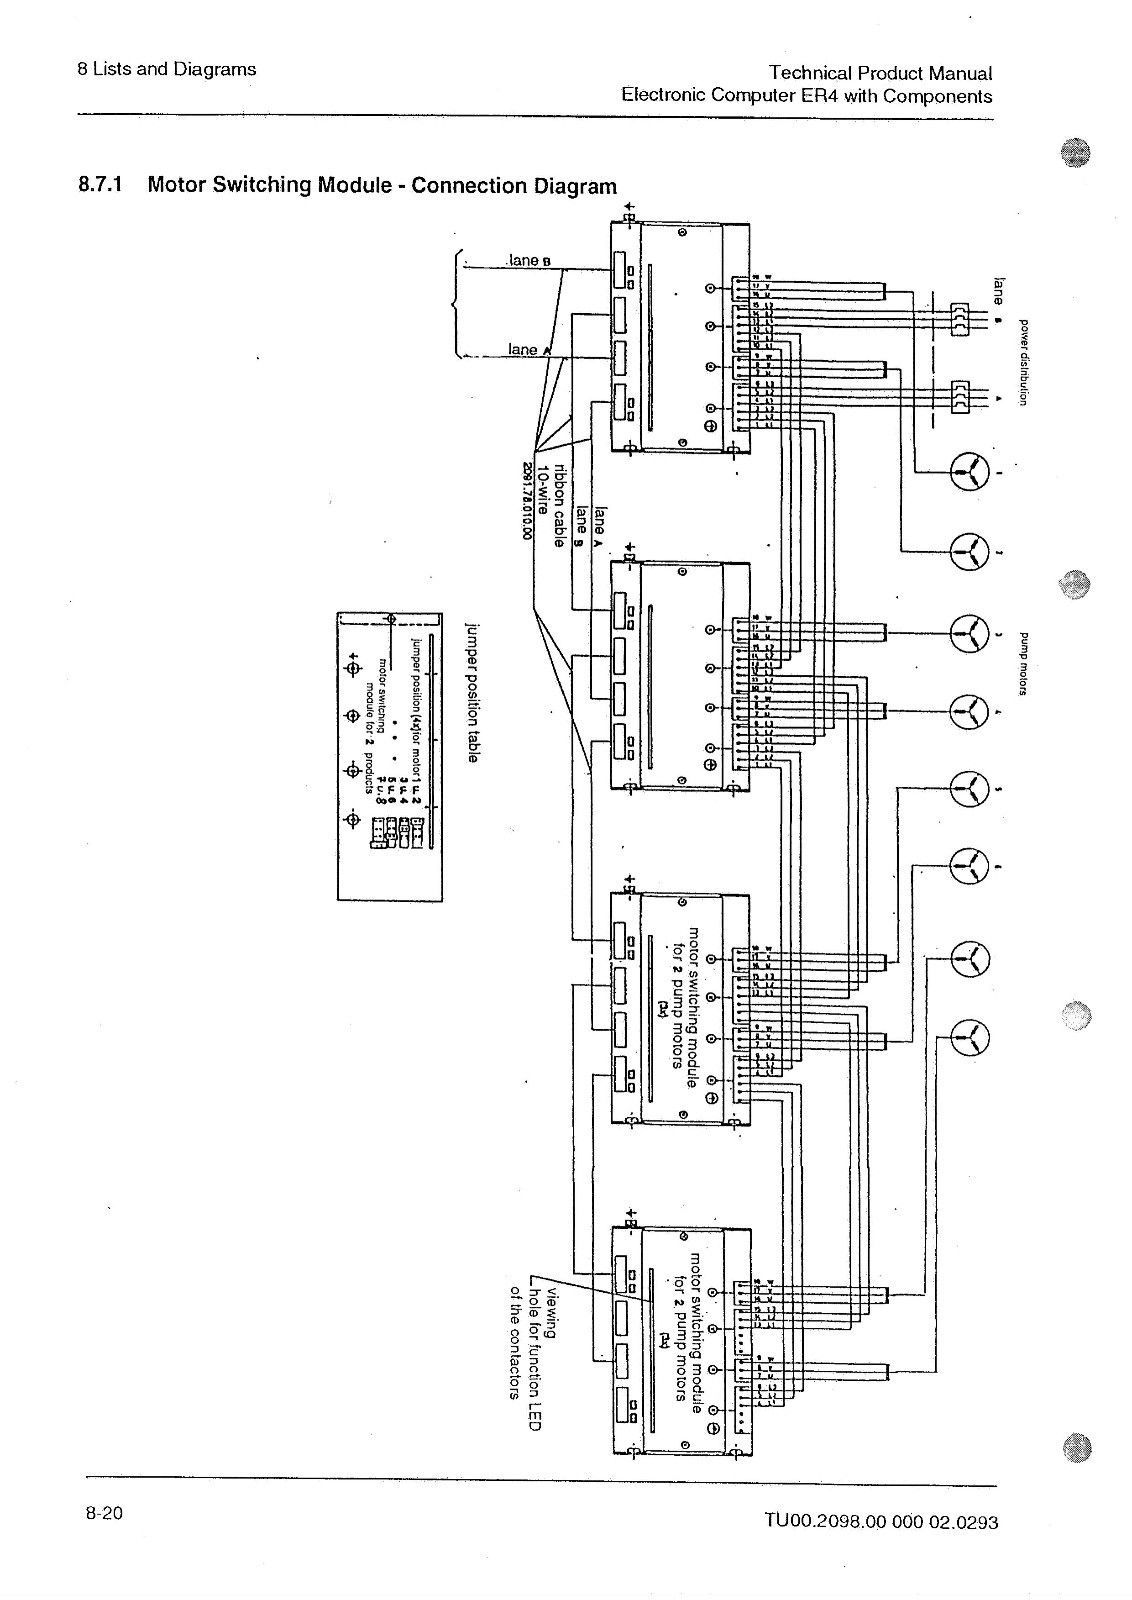 s4s wiring diagram pontiac grand am v6 engine diagram 03